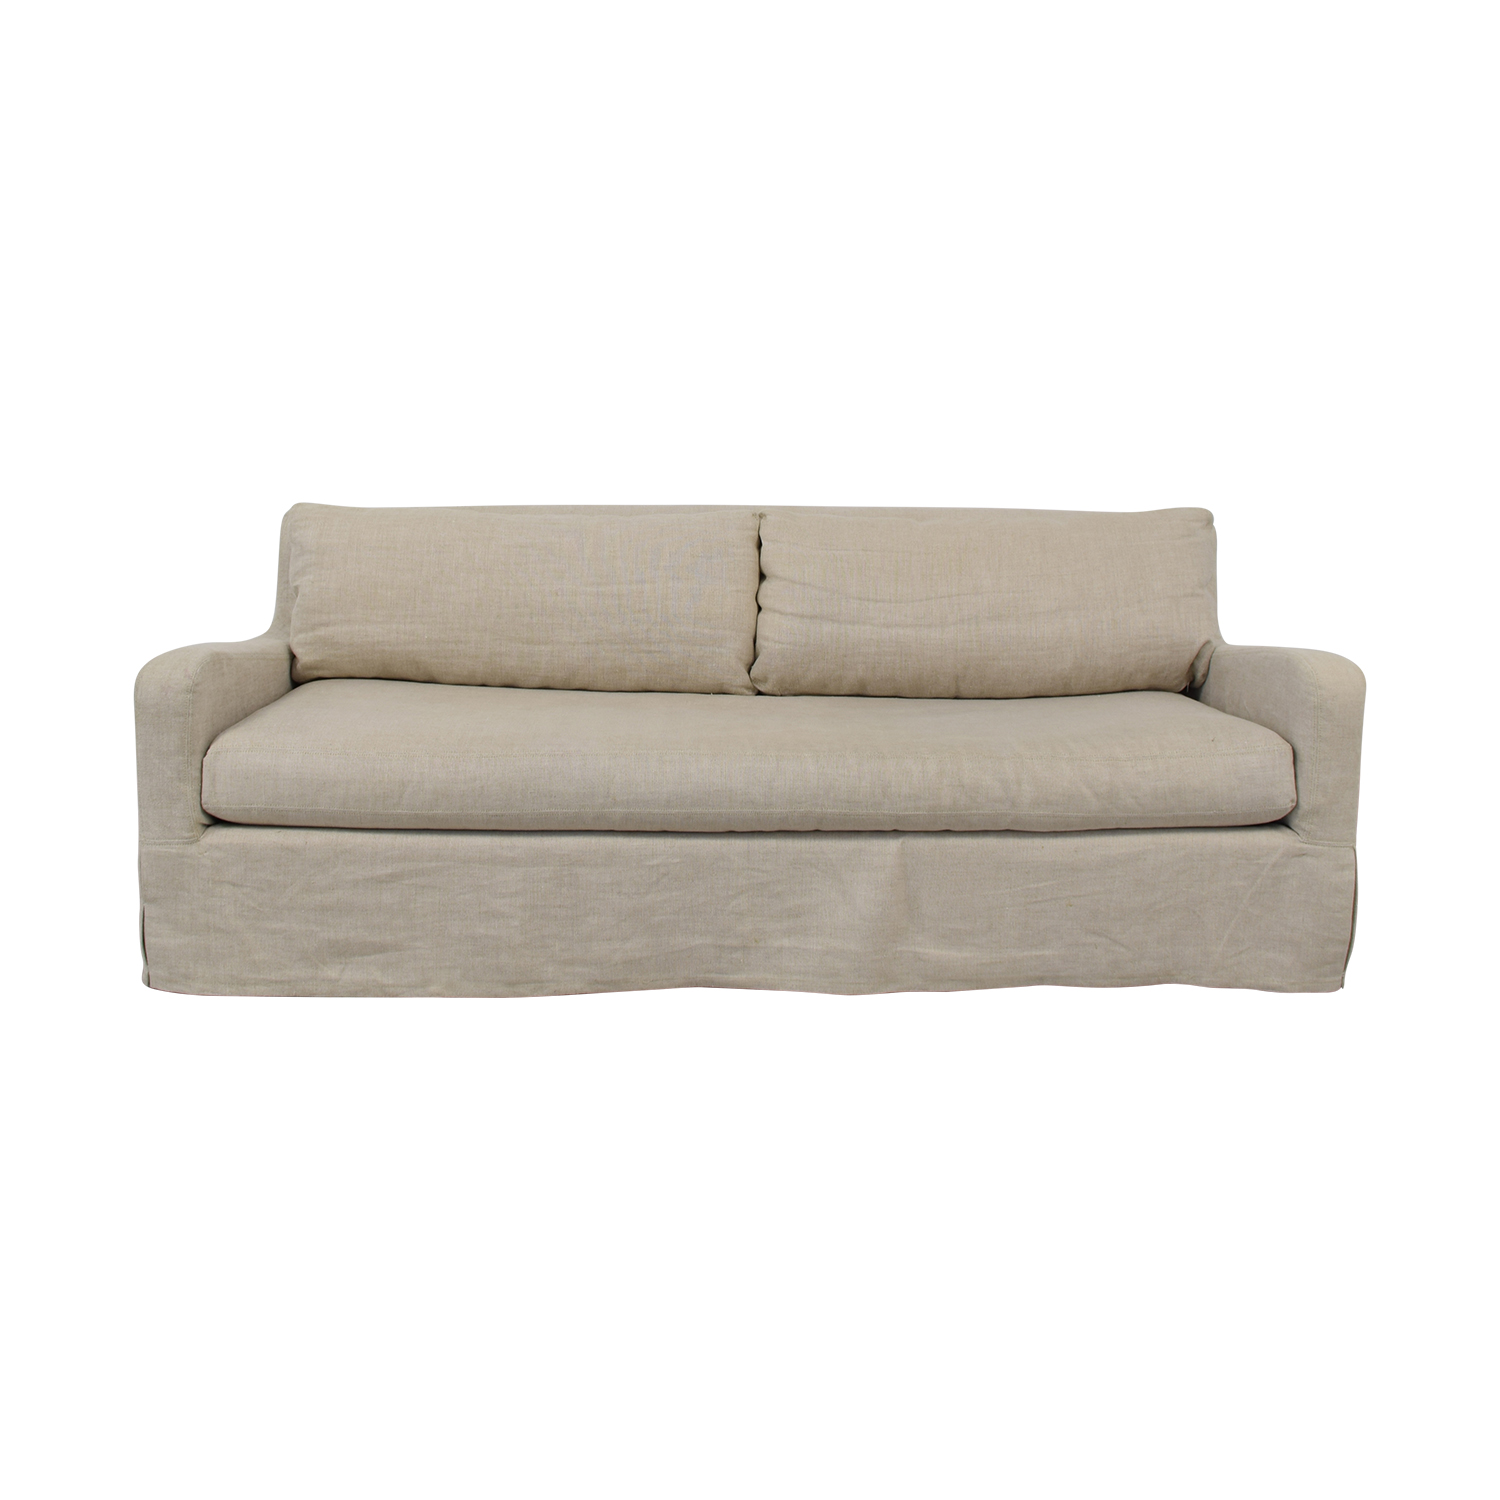 buy Restoration Hardware Belgian Slope Arm Slipcover Sofa Restoration Hardware Classic Sofas